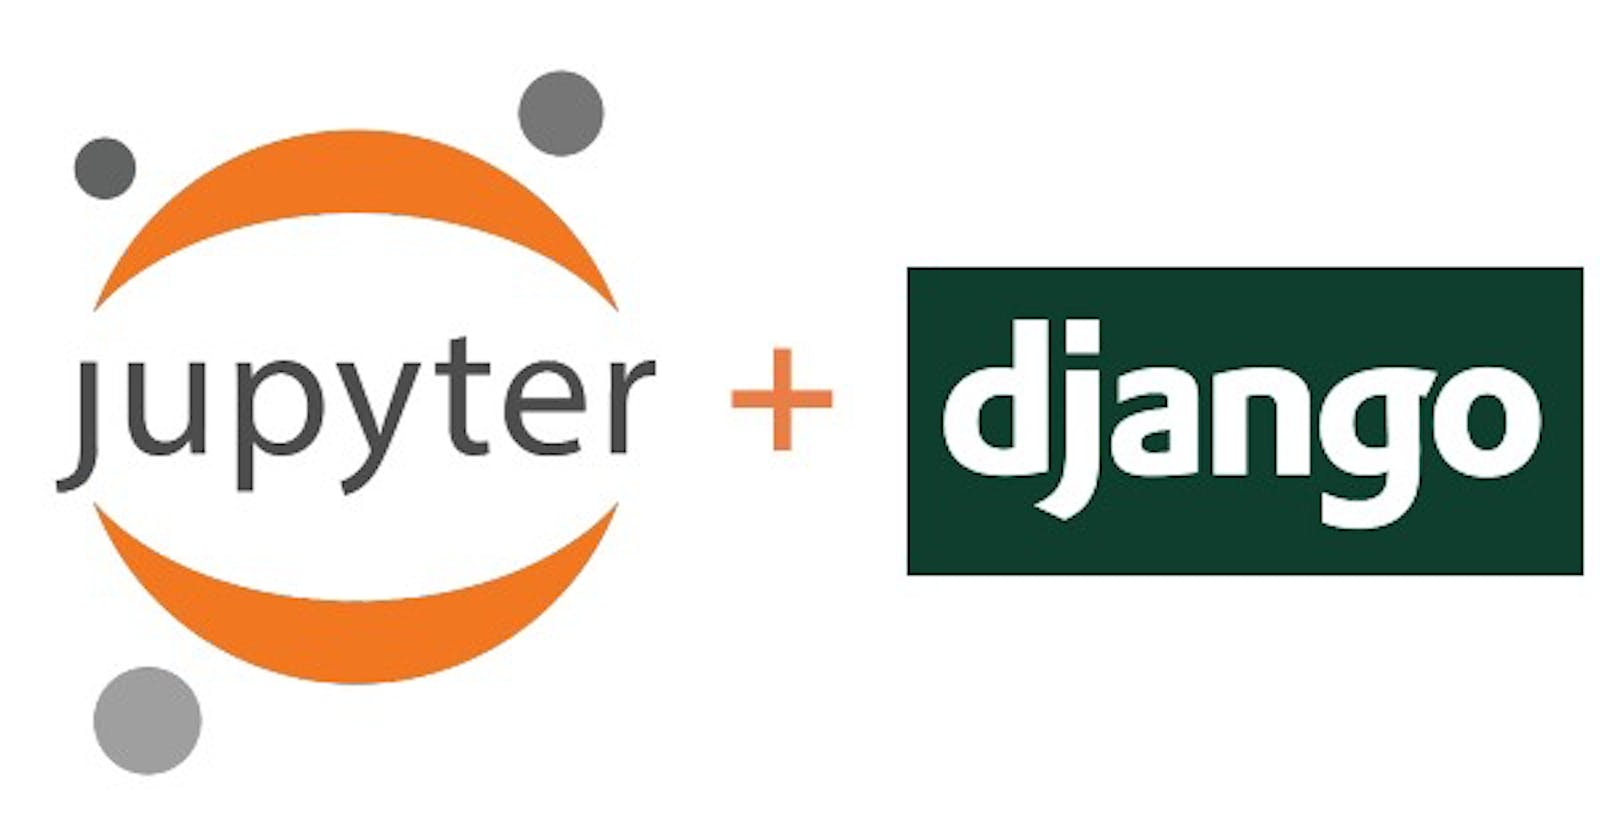 How to use Django shell in Jupyter Notebook